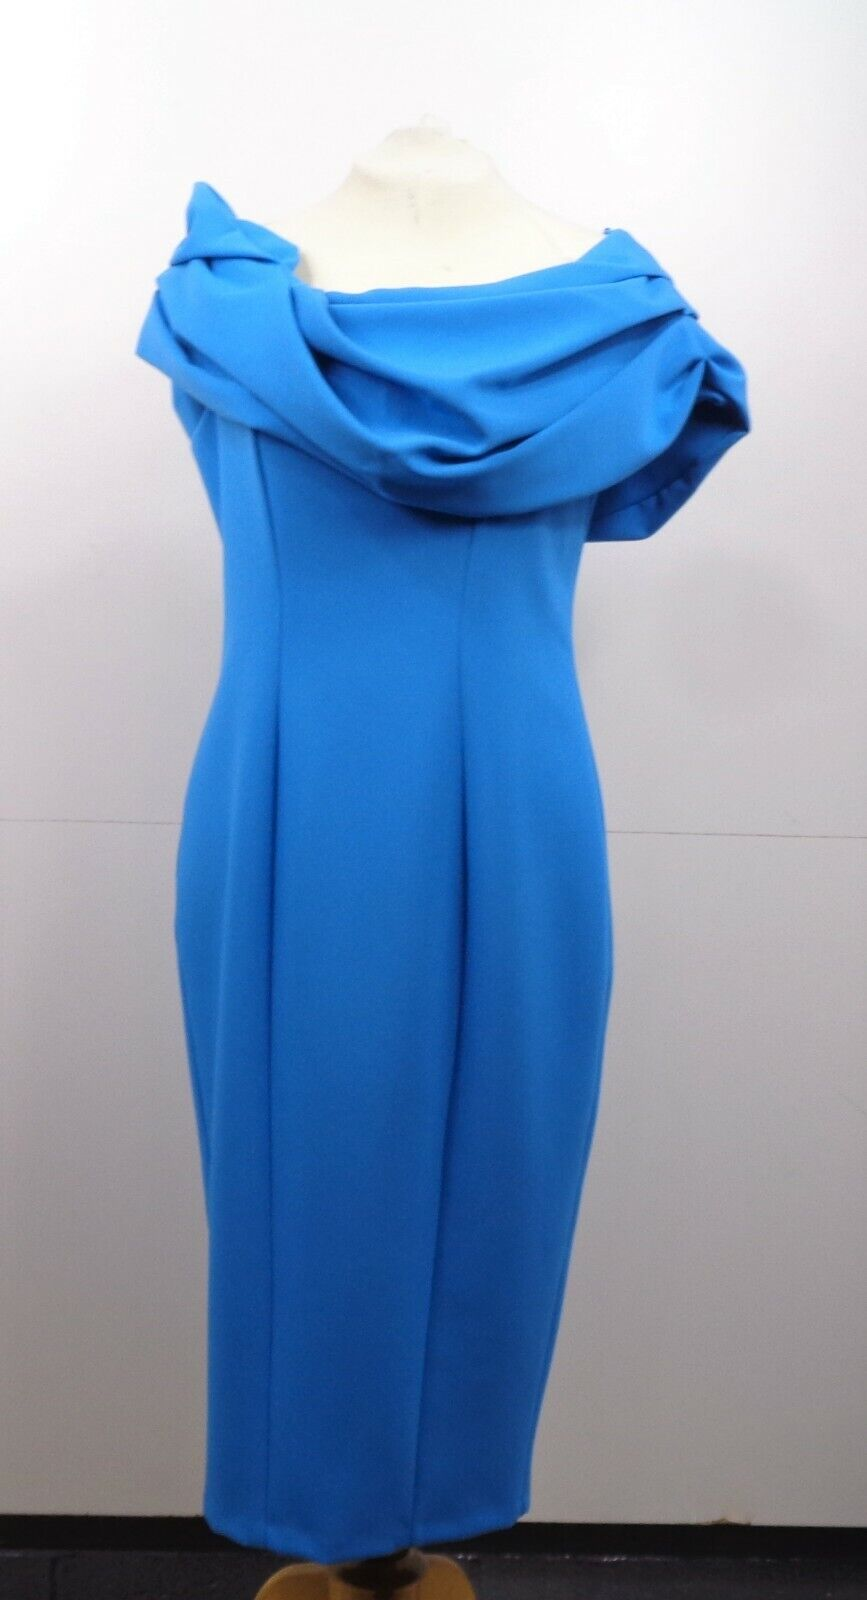 Formal Teal Dress with Ruffled Collar - Mother of the Bride Wedding UK 12 G2 HB4